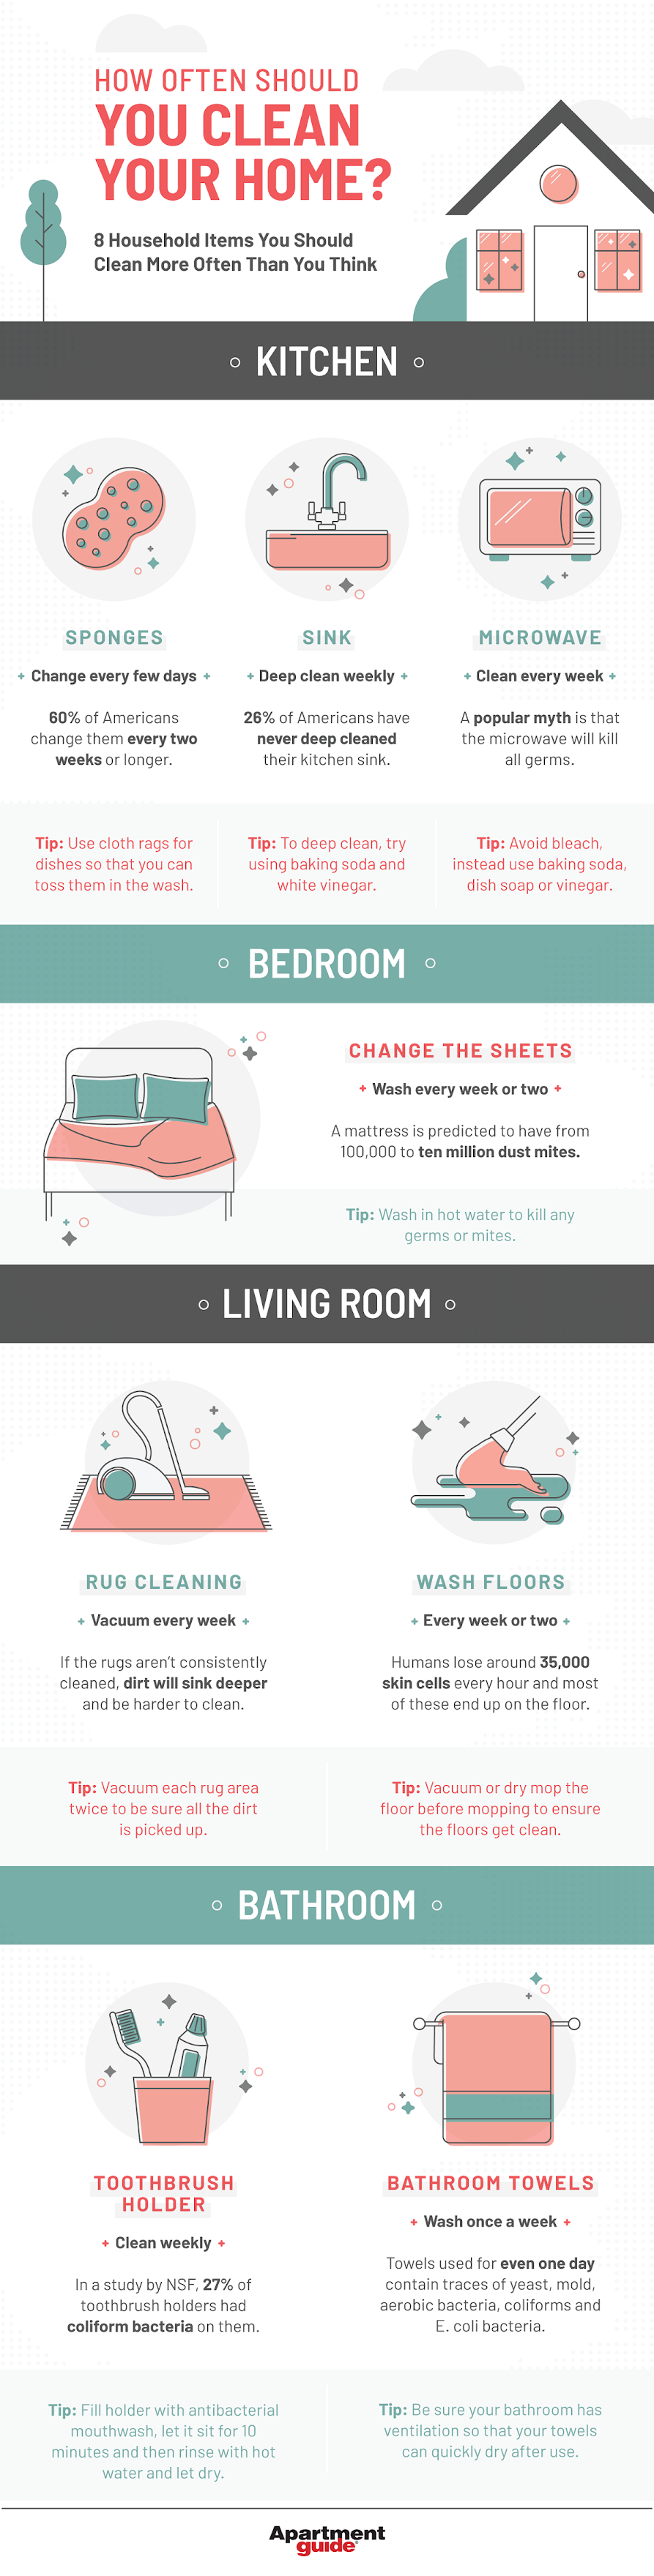 How Often Should You Clean Your Home? #infographic